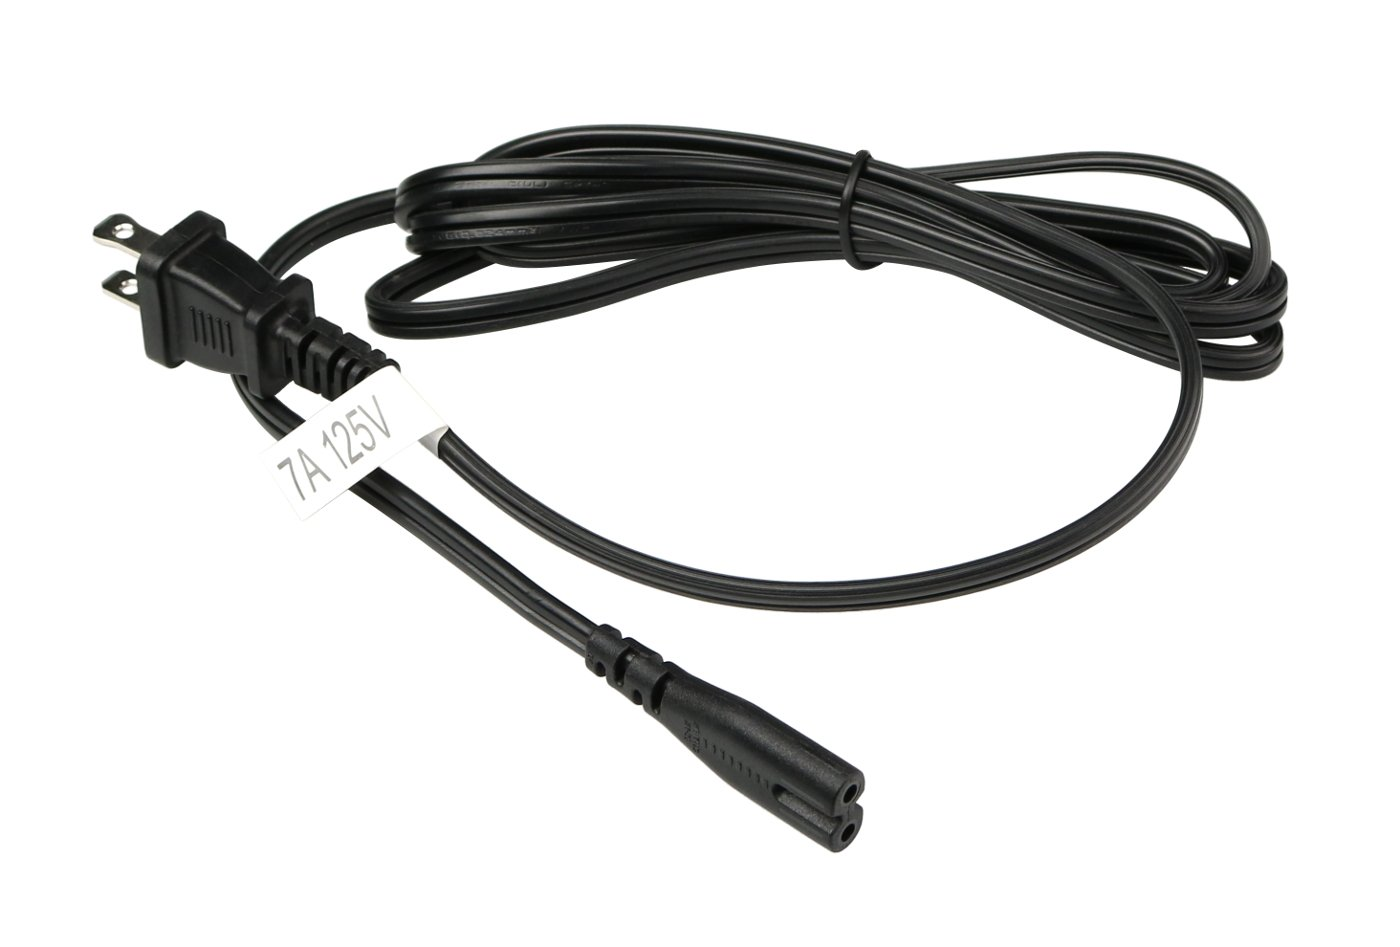 IEC Power Cable for Elevate 3